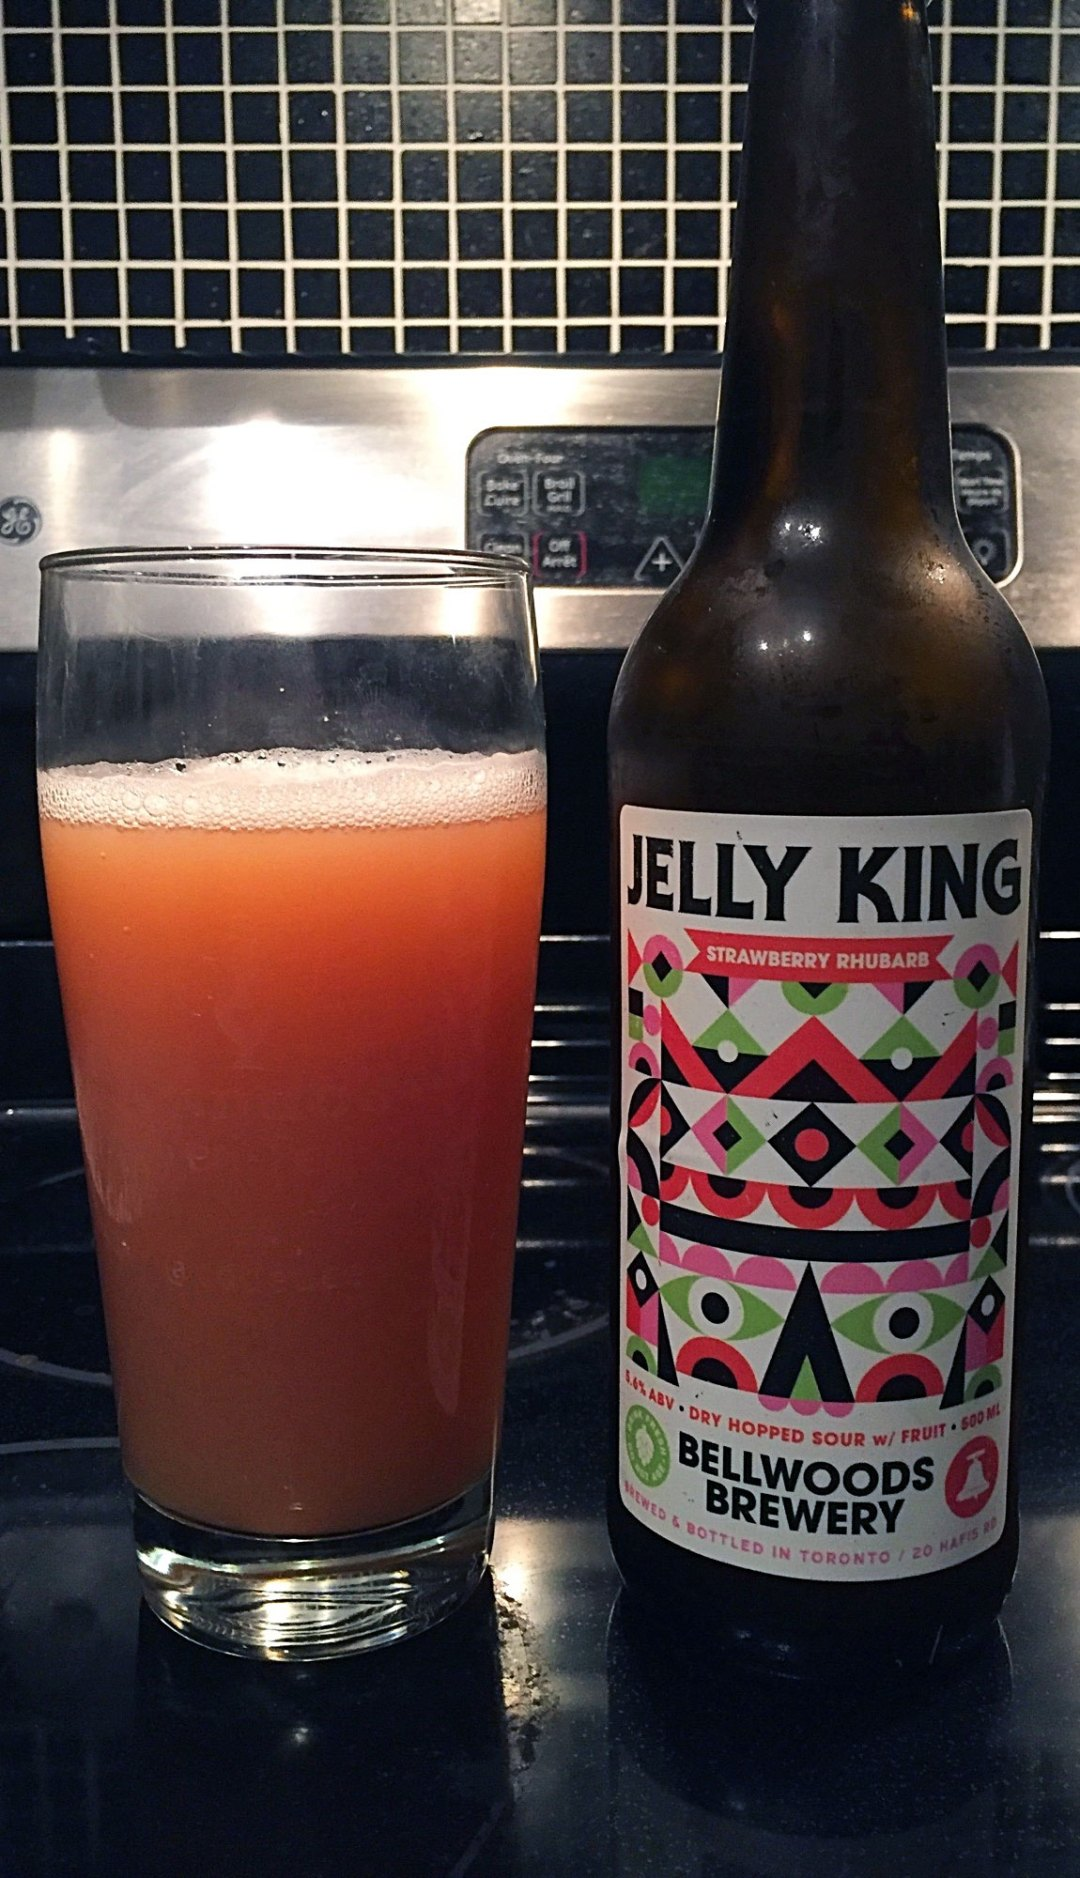 I just happened to be passing by the brewery and noticed they had a new flavour of Jelly King, so I picked one up to give it a try. I was not disappointed. Click through for full craft beer review!